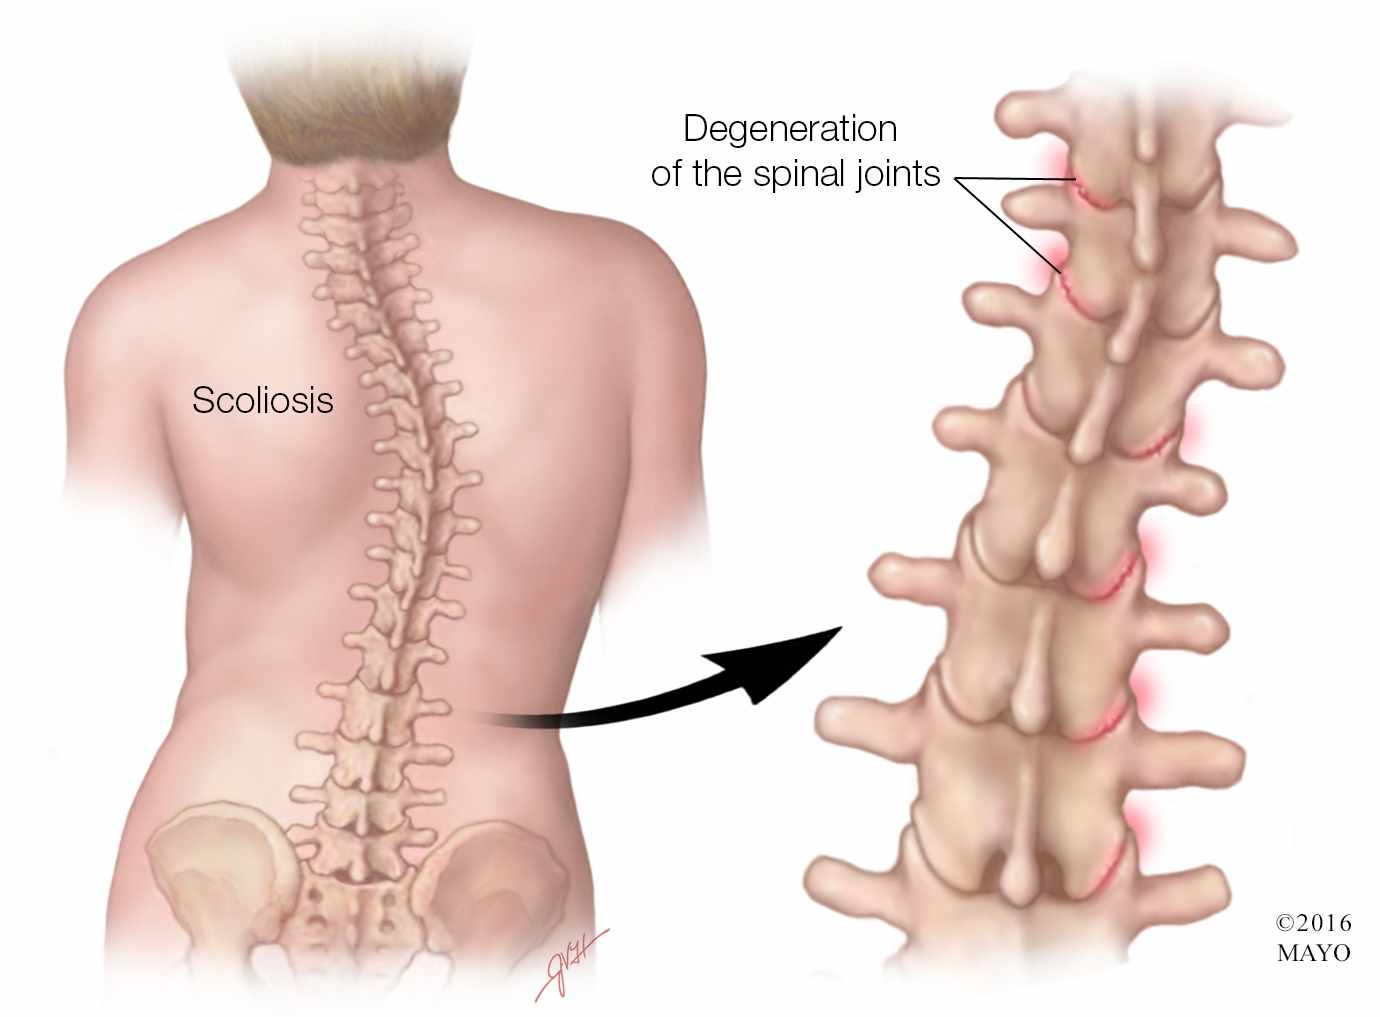 Why do I have scoliosis?